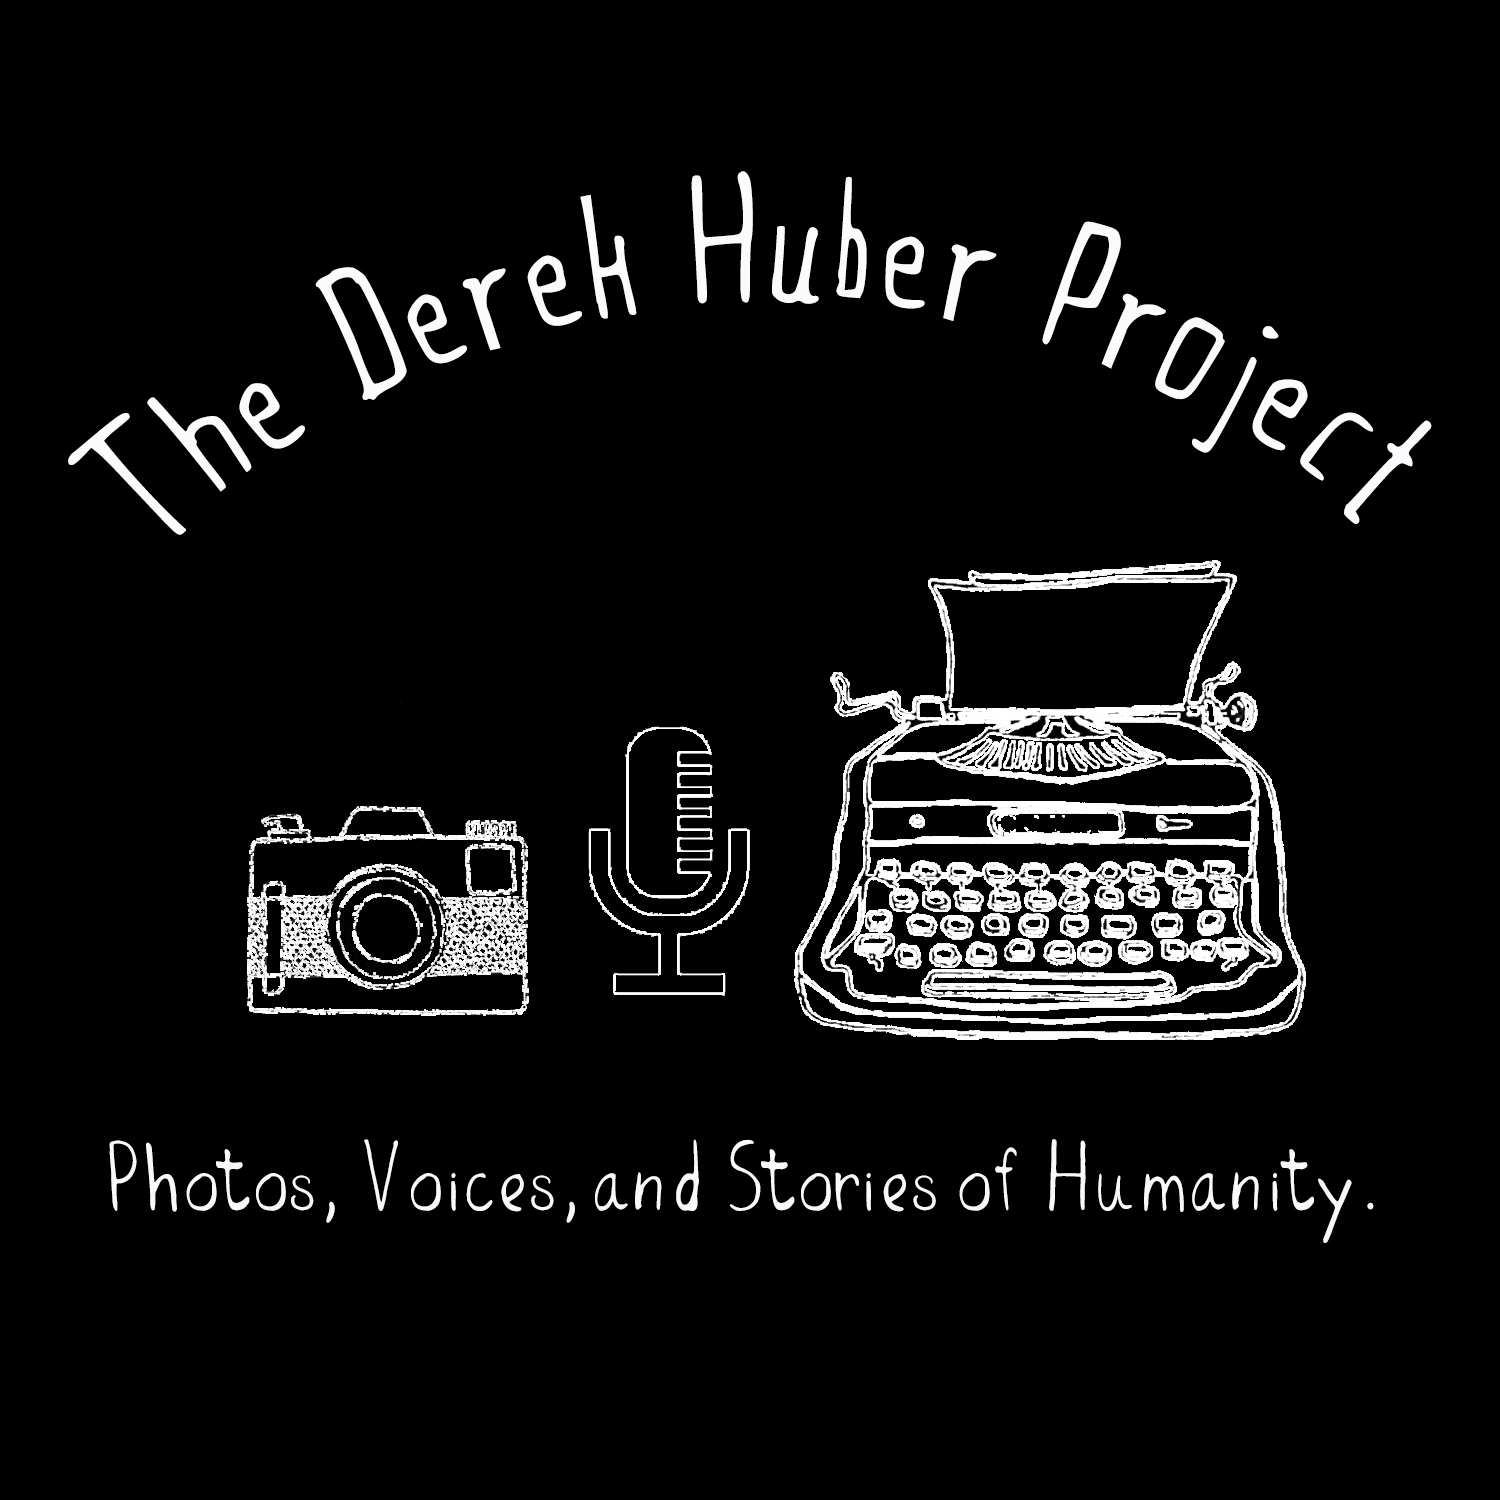 Voices of Humanity. - The Derek Huber Project